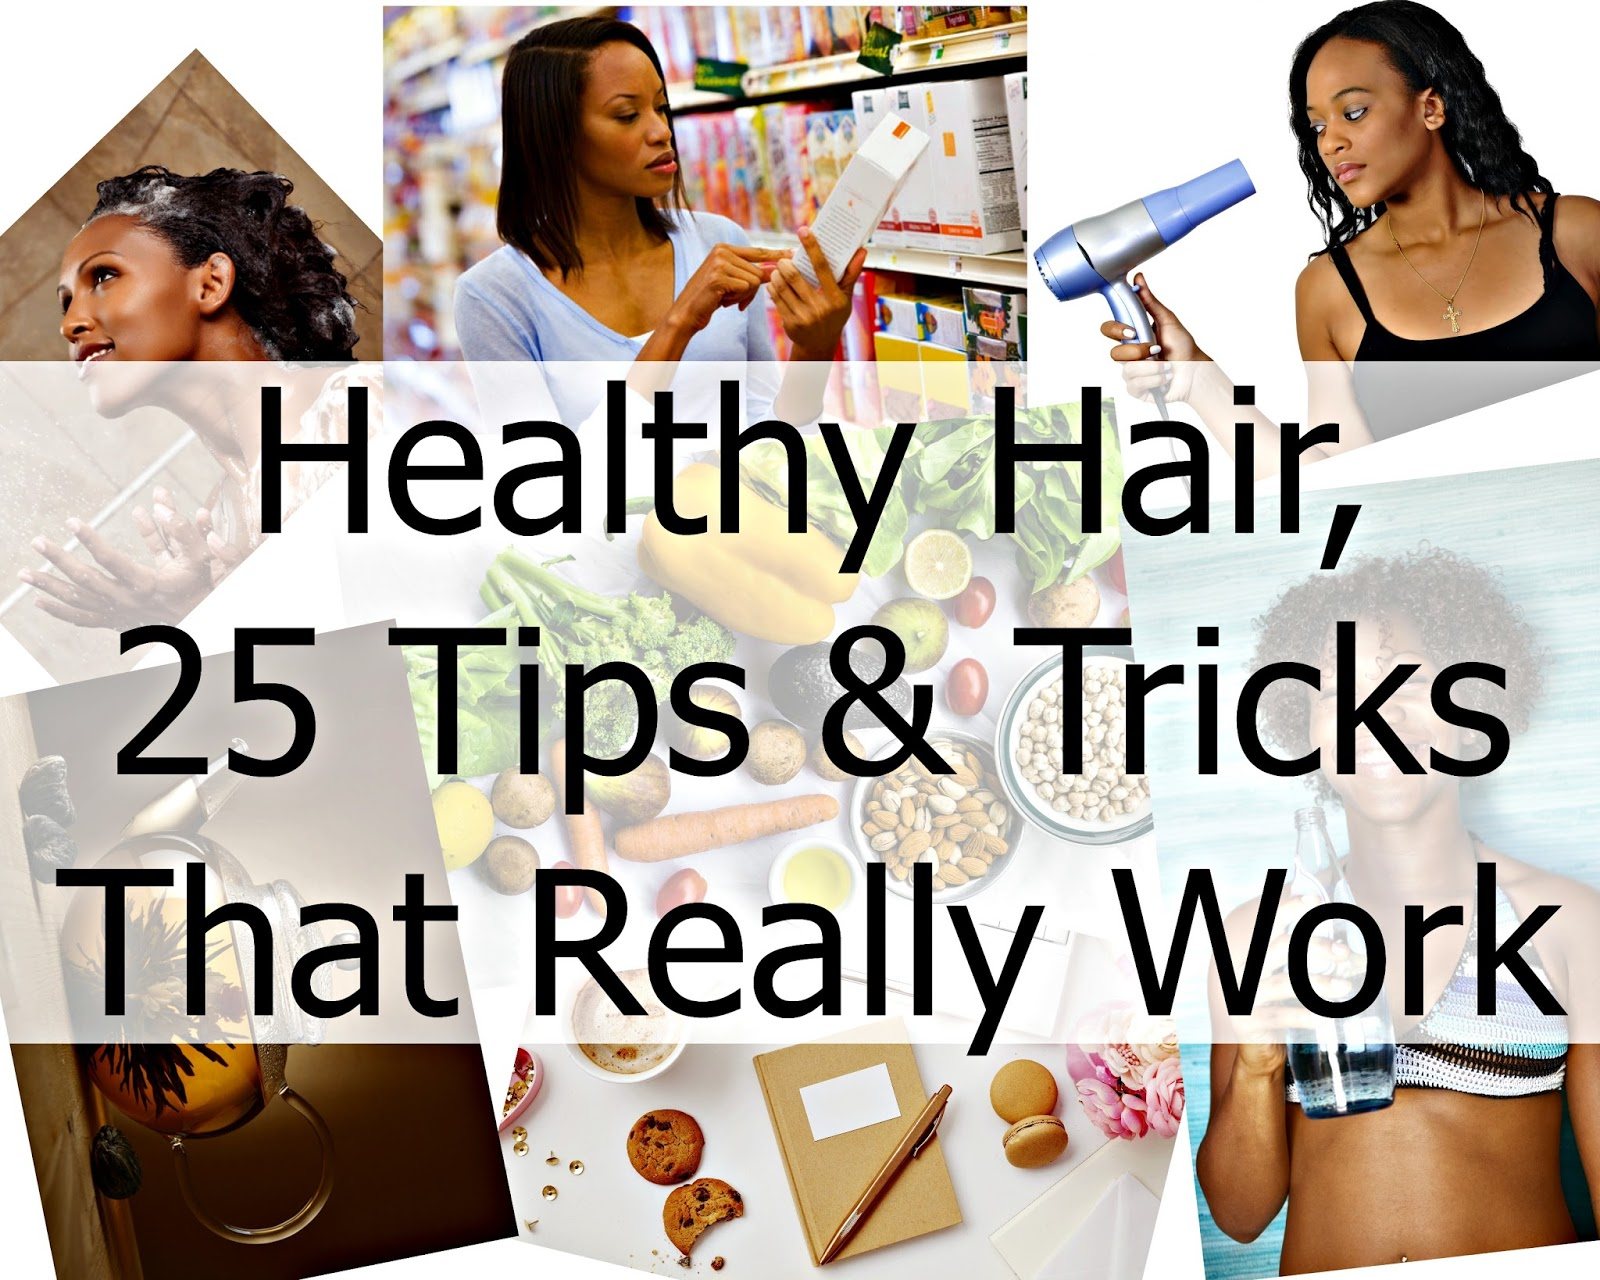 Want to grow hair that stays strong? Of course you do and we've got the top 25 tops that will ensure you get there. It's all about knowing how to care for your natural hair.